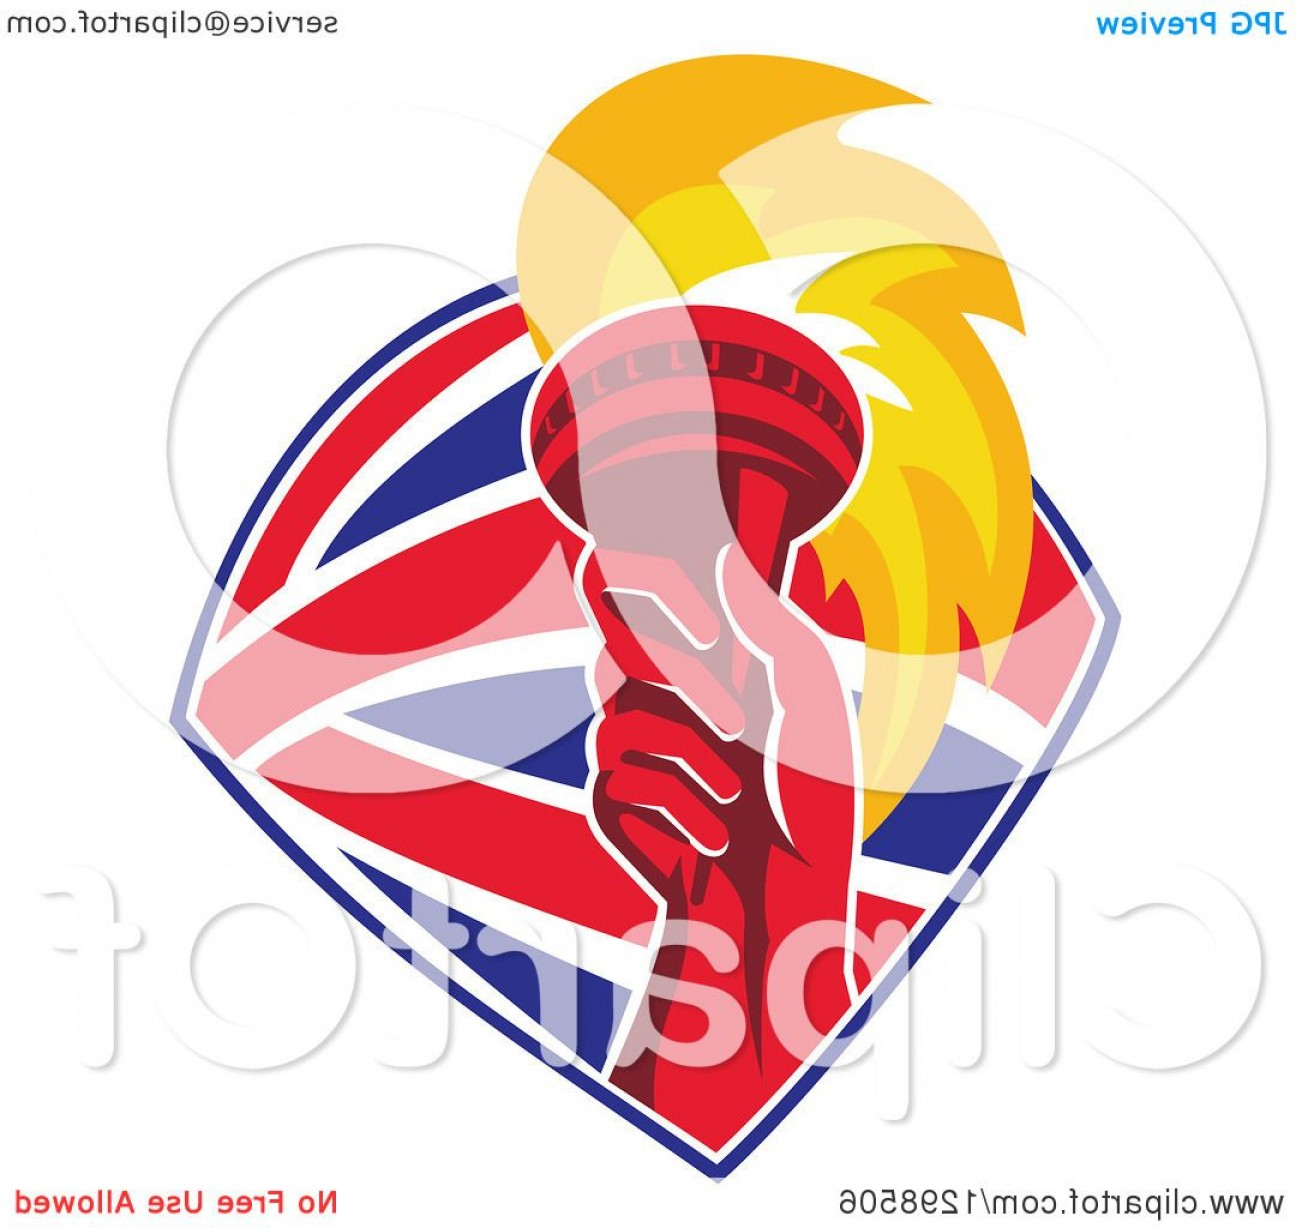 Union Jack Flag Tattered Vector: Red Hand Holding Up A Torch In A British Flag Shield